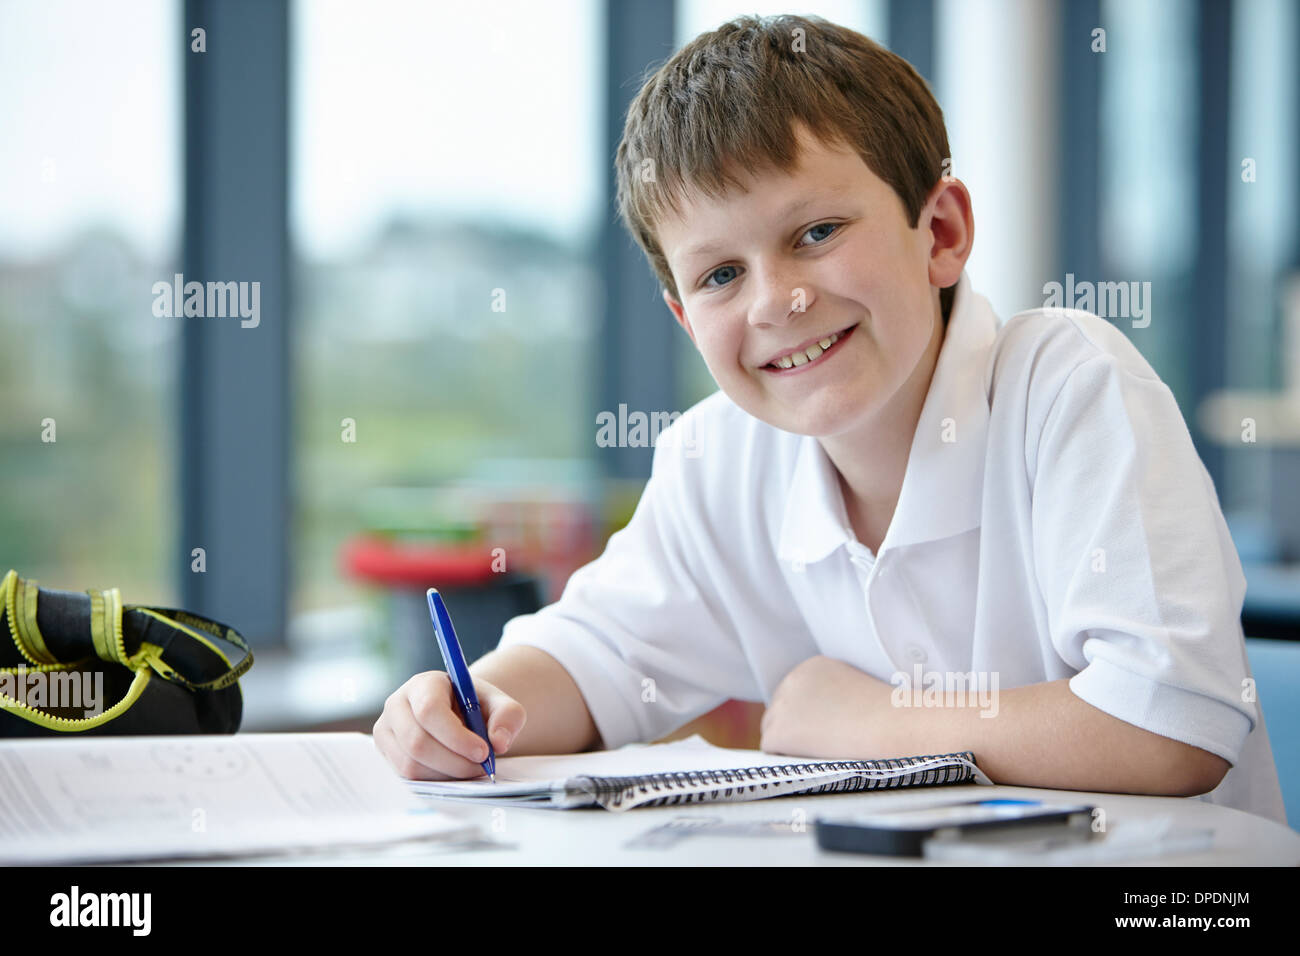 Portrait of schoolboy writing in class - Stock Image